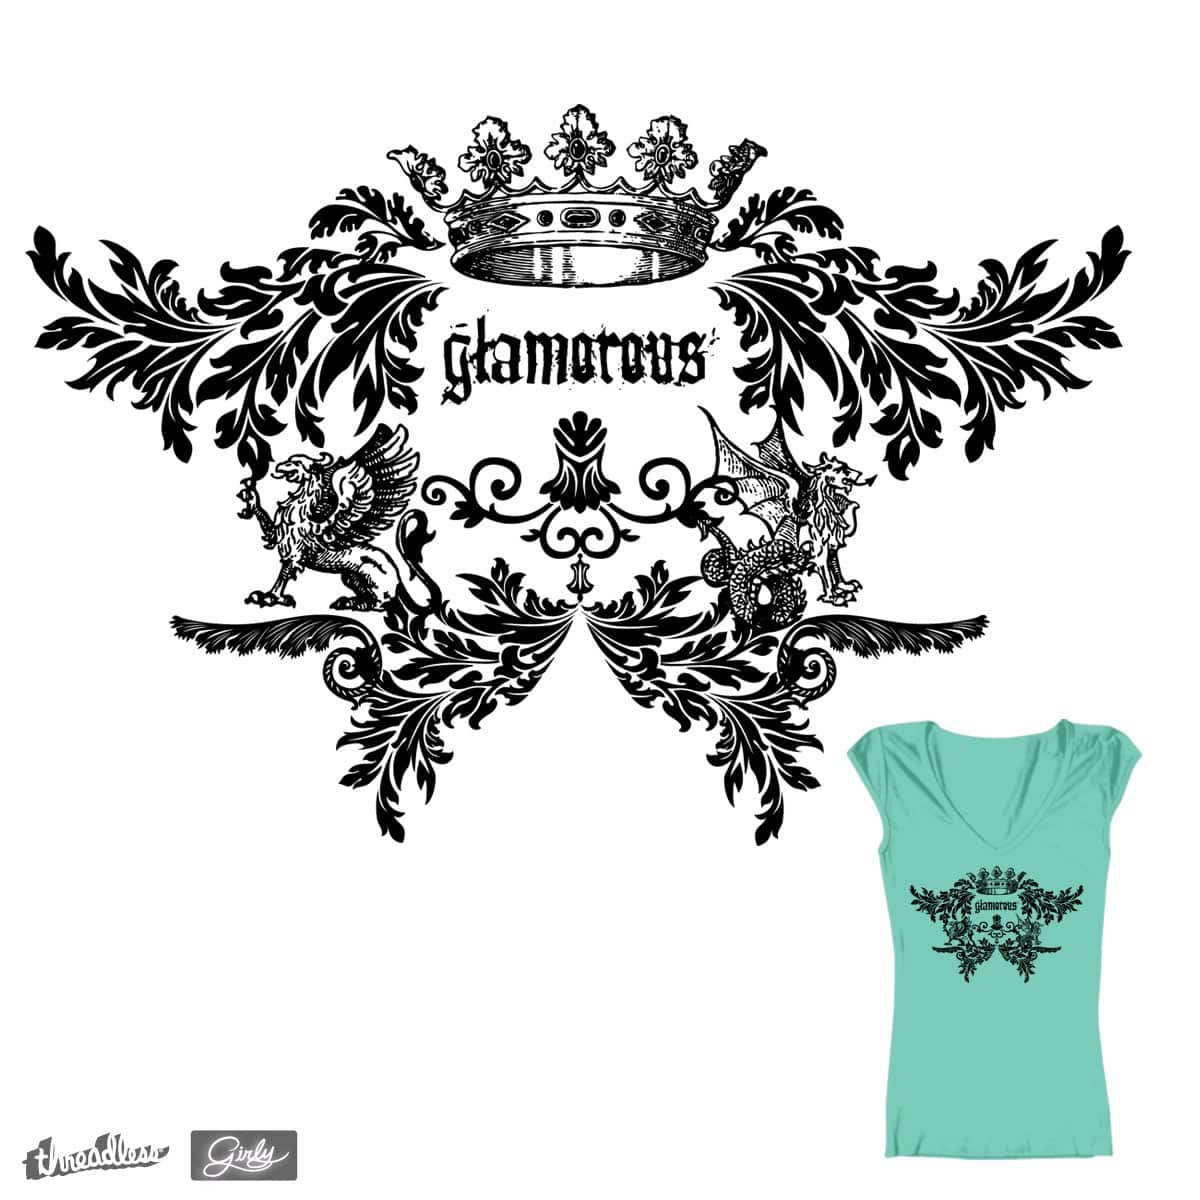 Glamorous by branded123 on Threadless